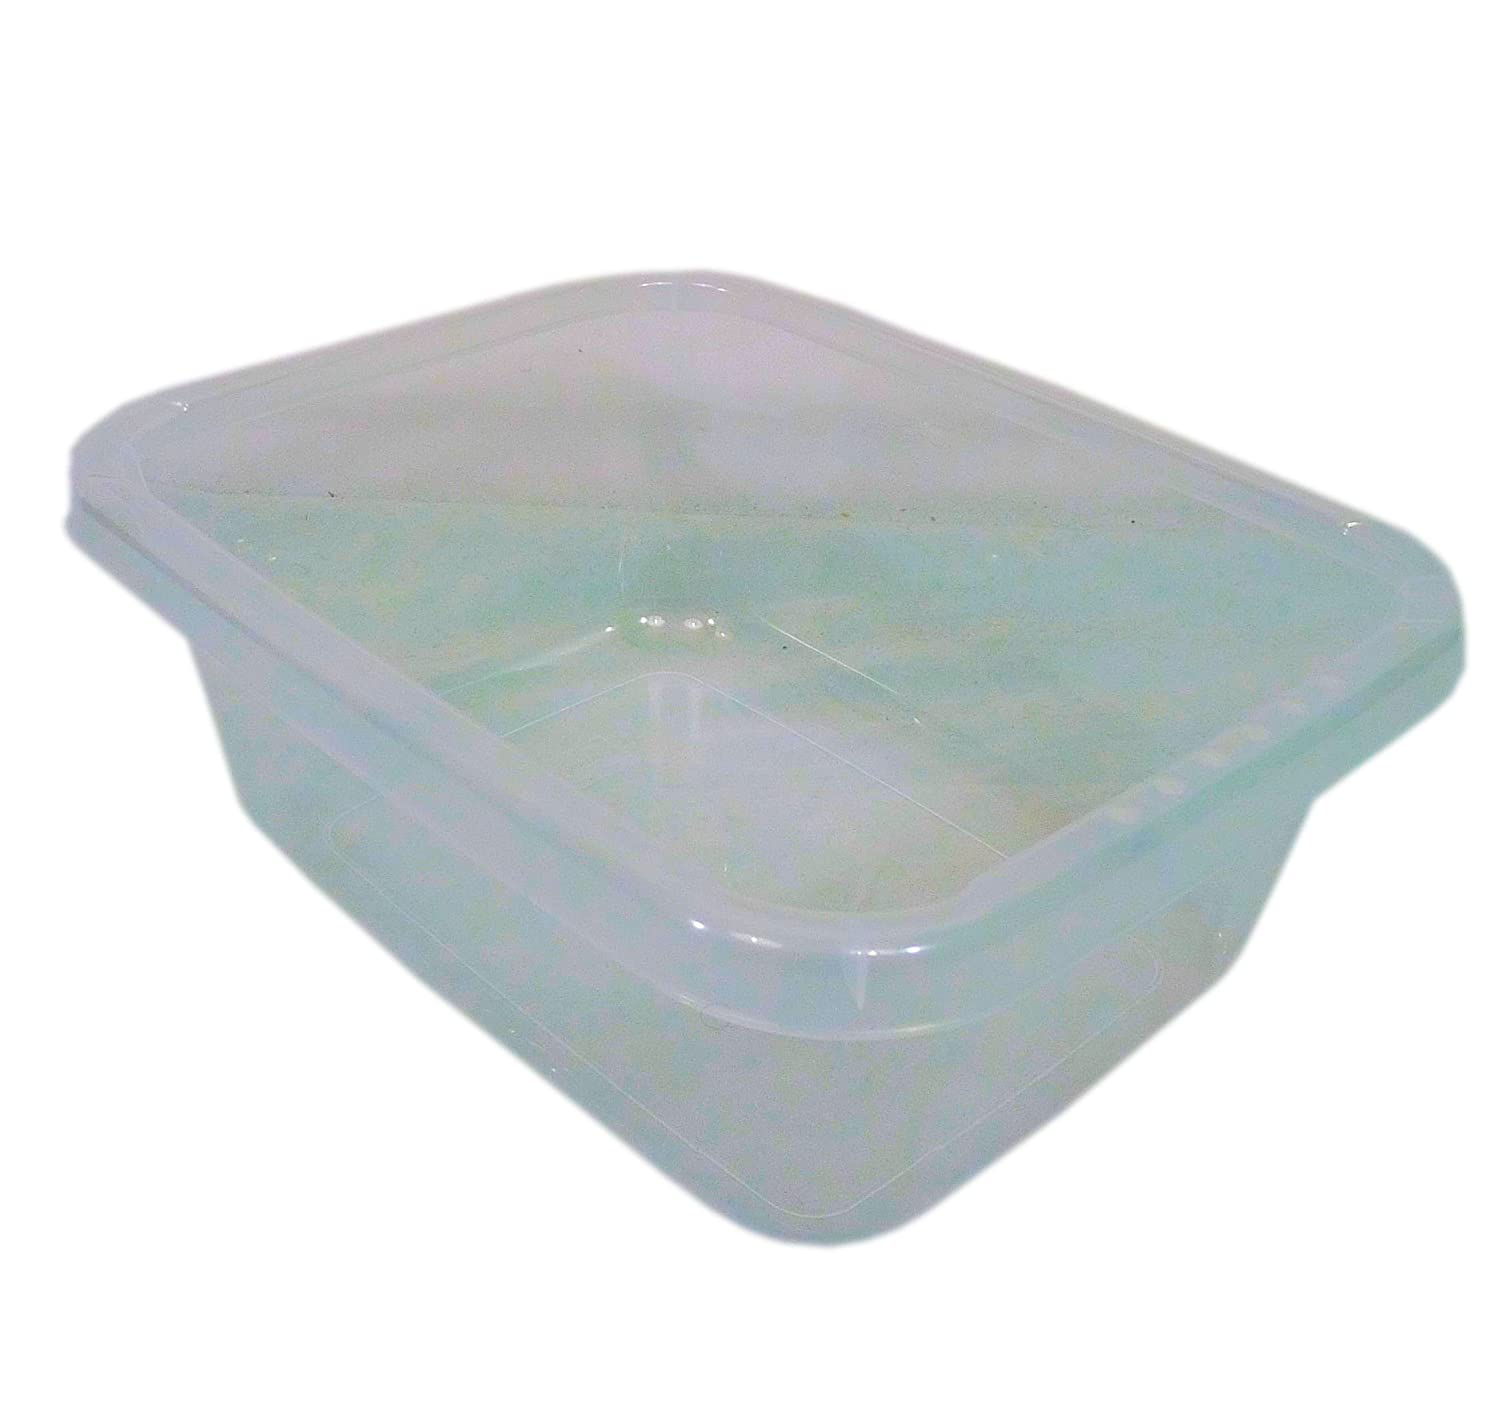 14 Litre Rectangular Clear Plastic Washing Up Bowl Basin 31112